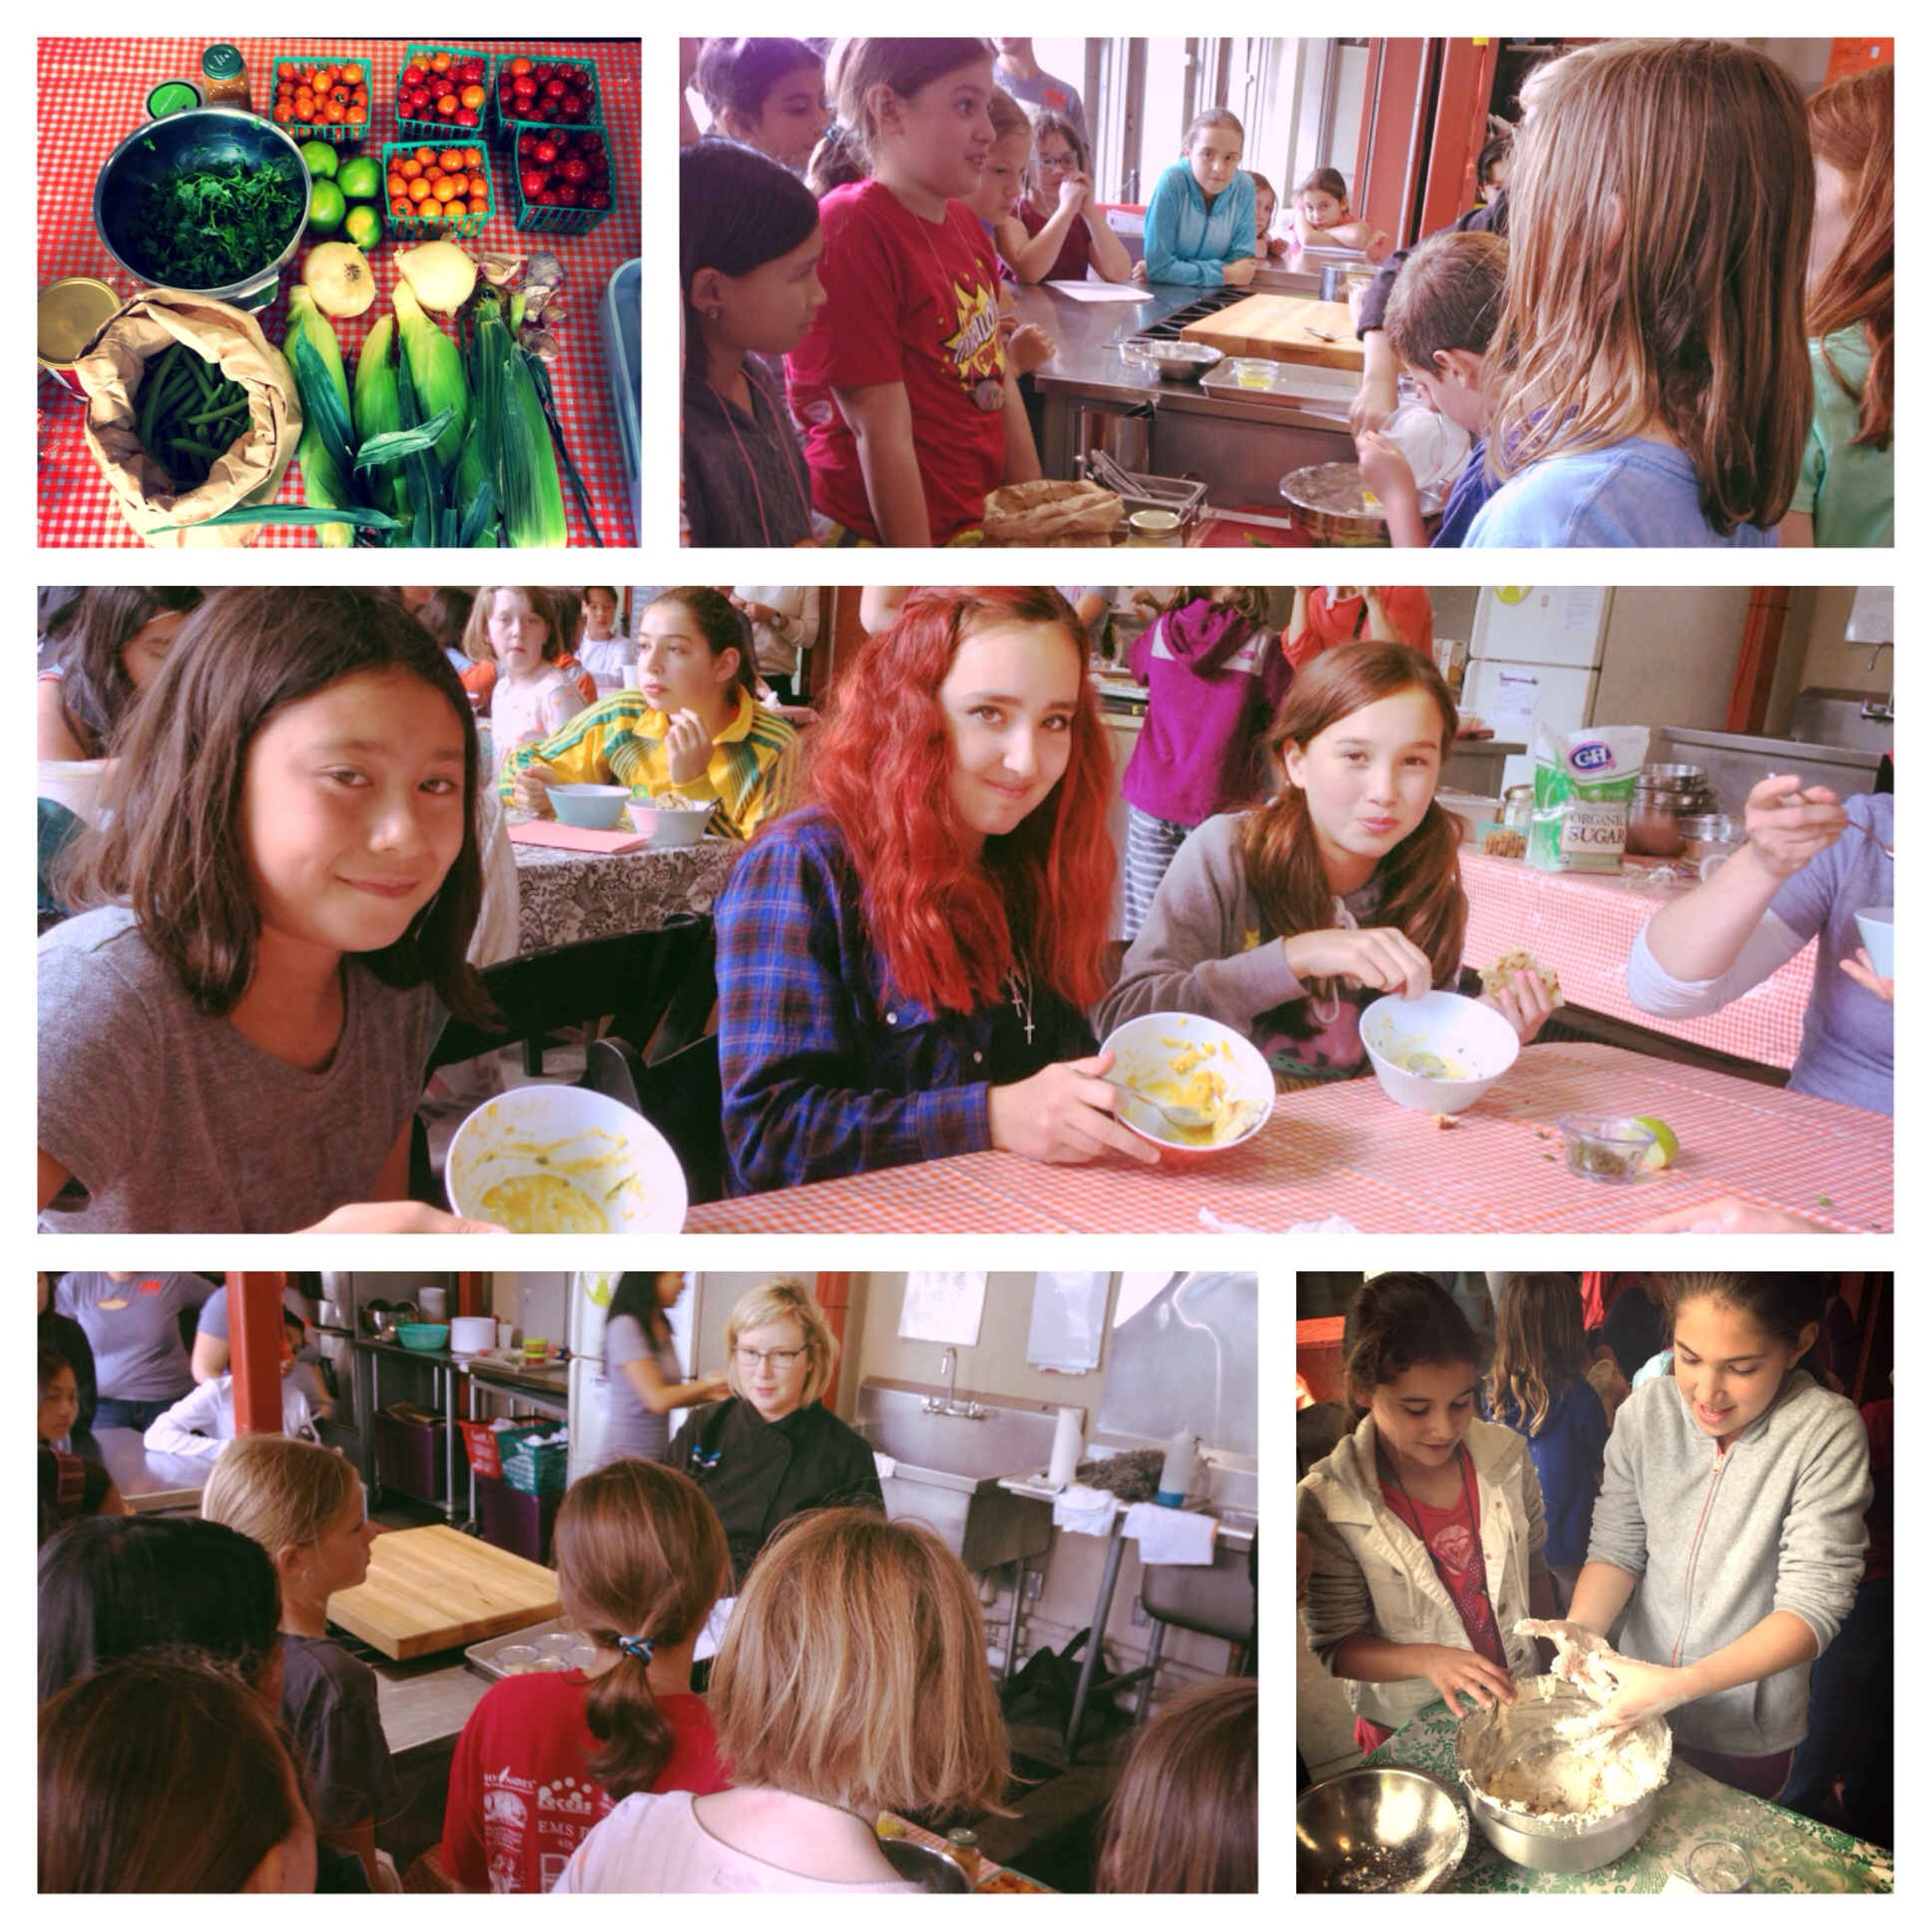 Chef Hollie had a rapt audience as she talked about curries and the campers got their hands dirty before scraping their bowls clean!